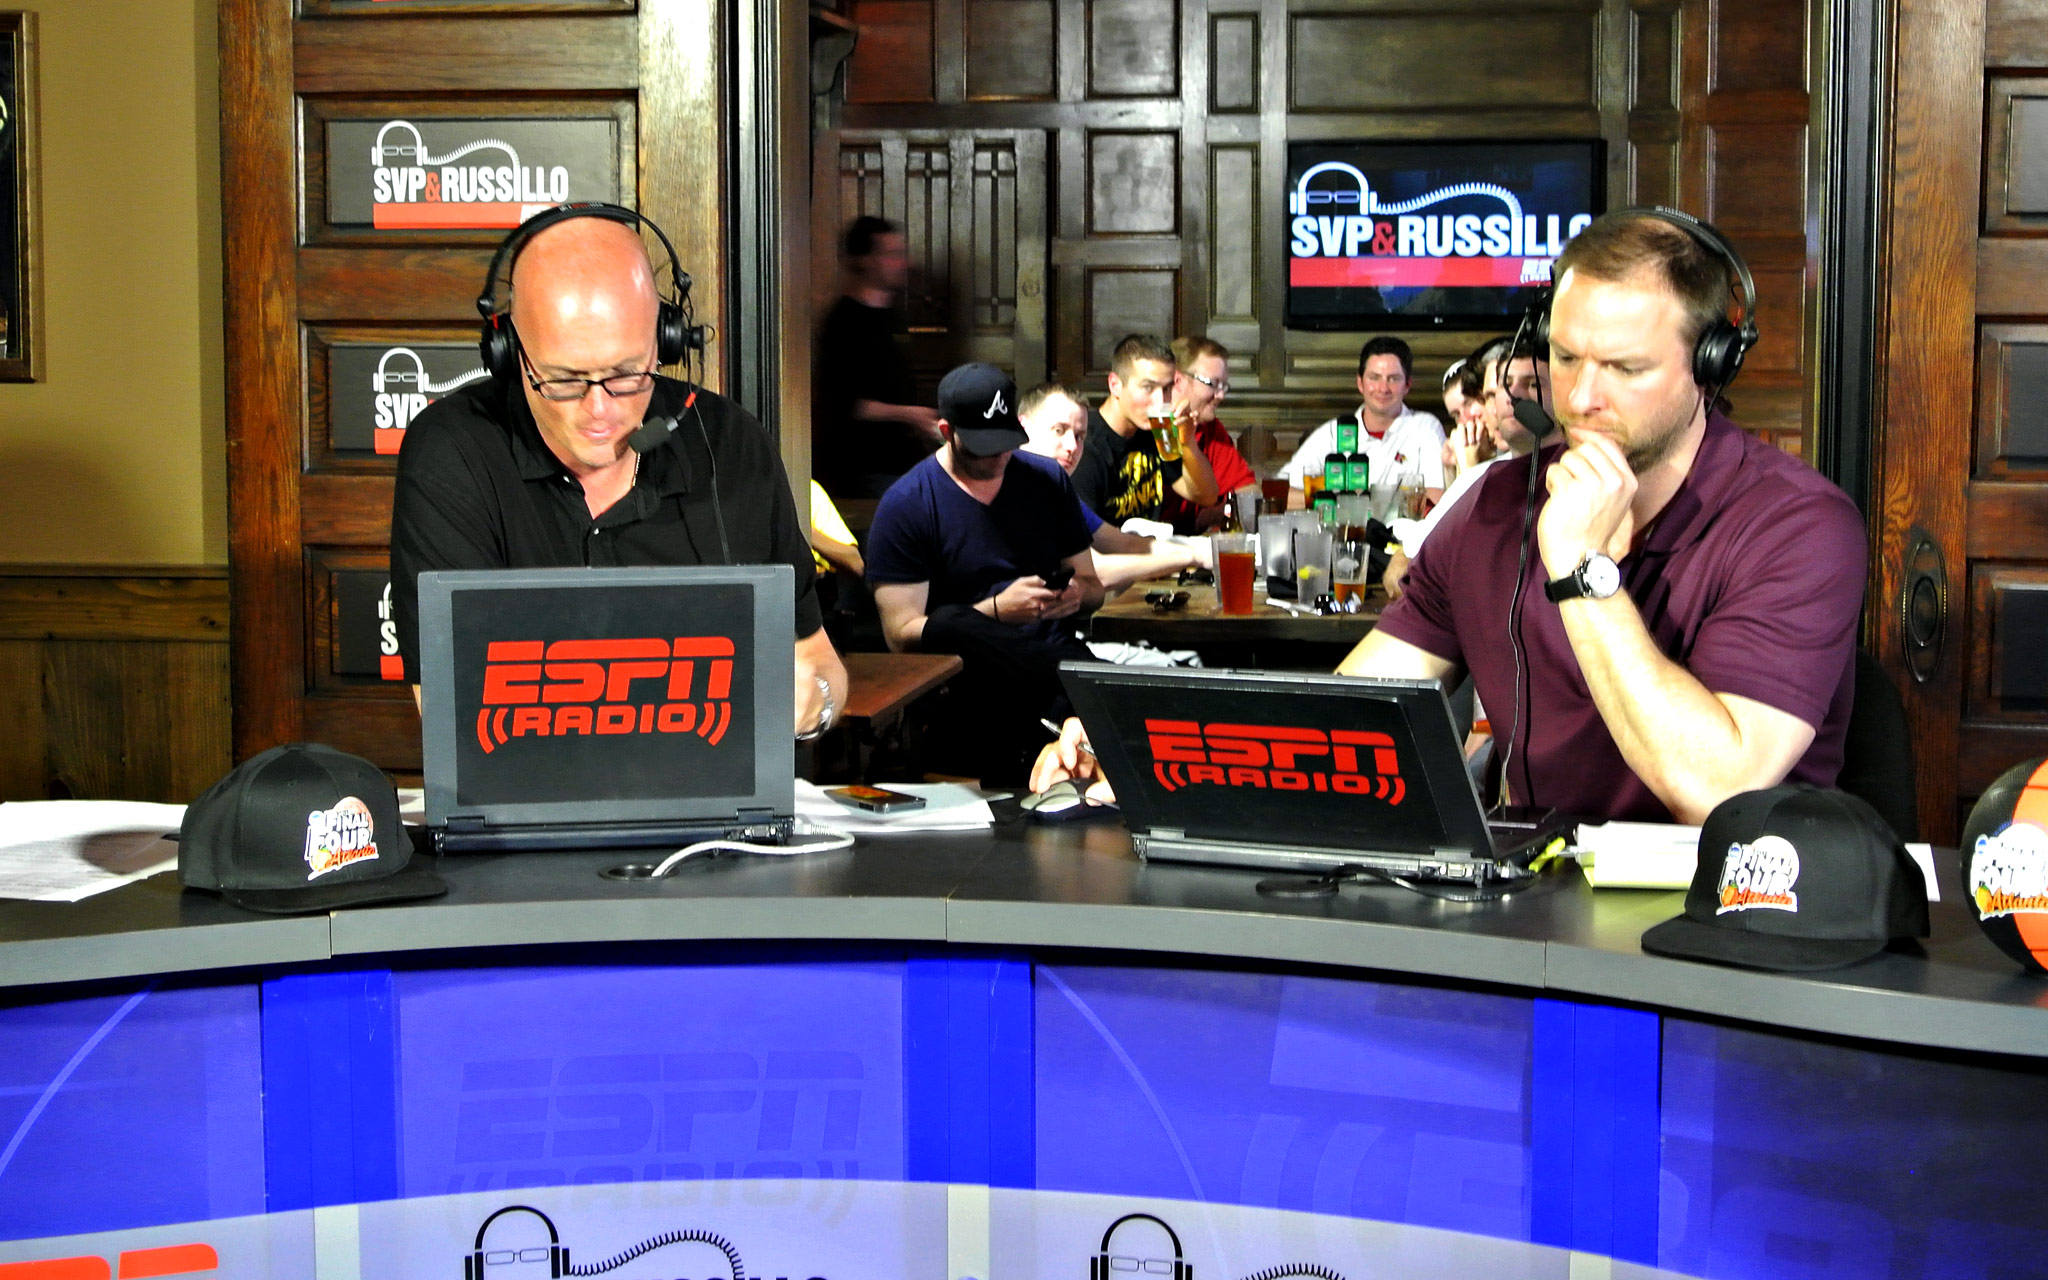 SVP and Russillo